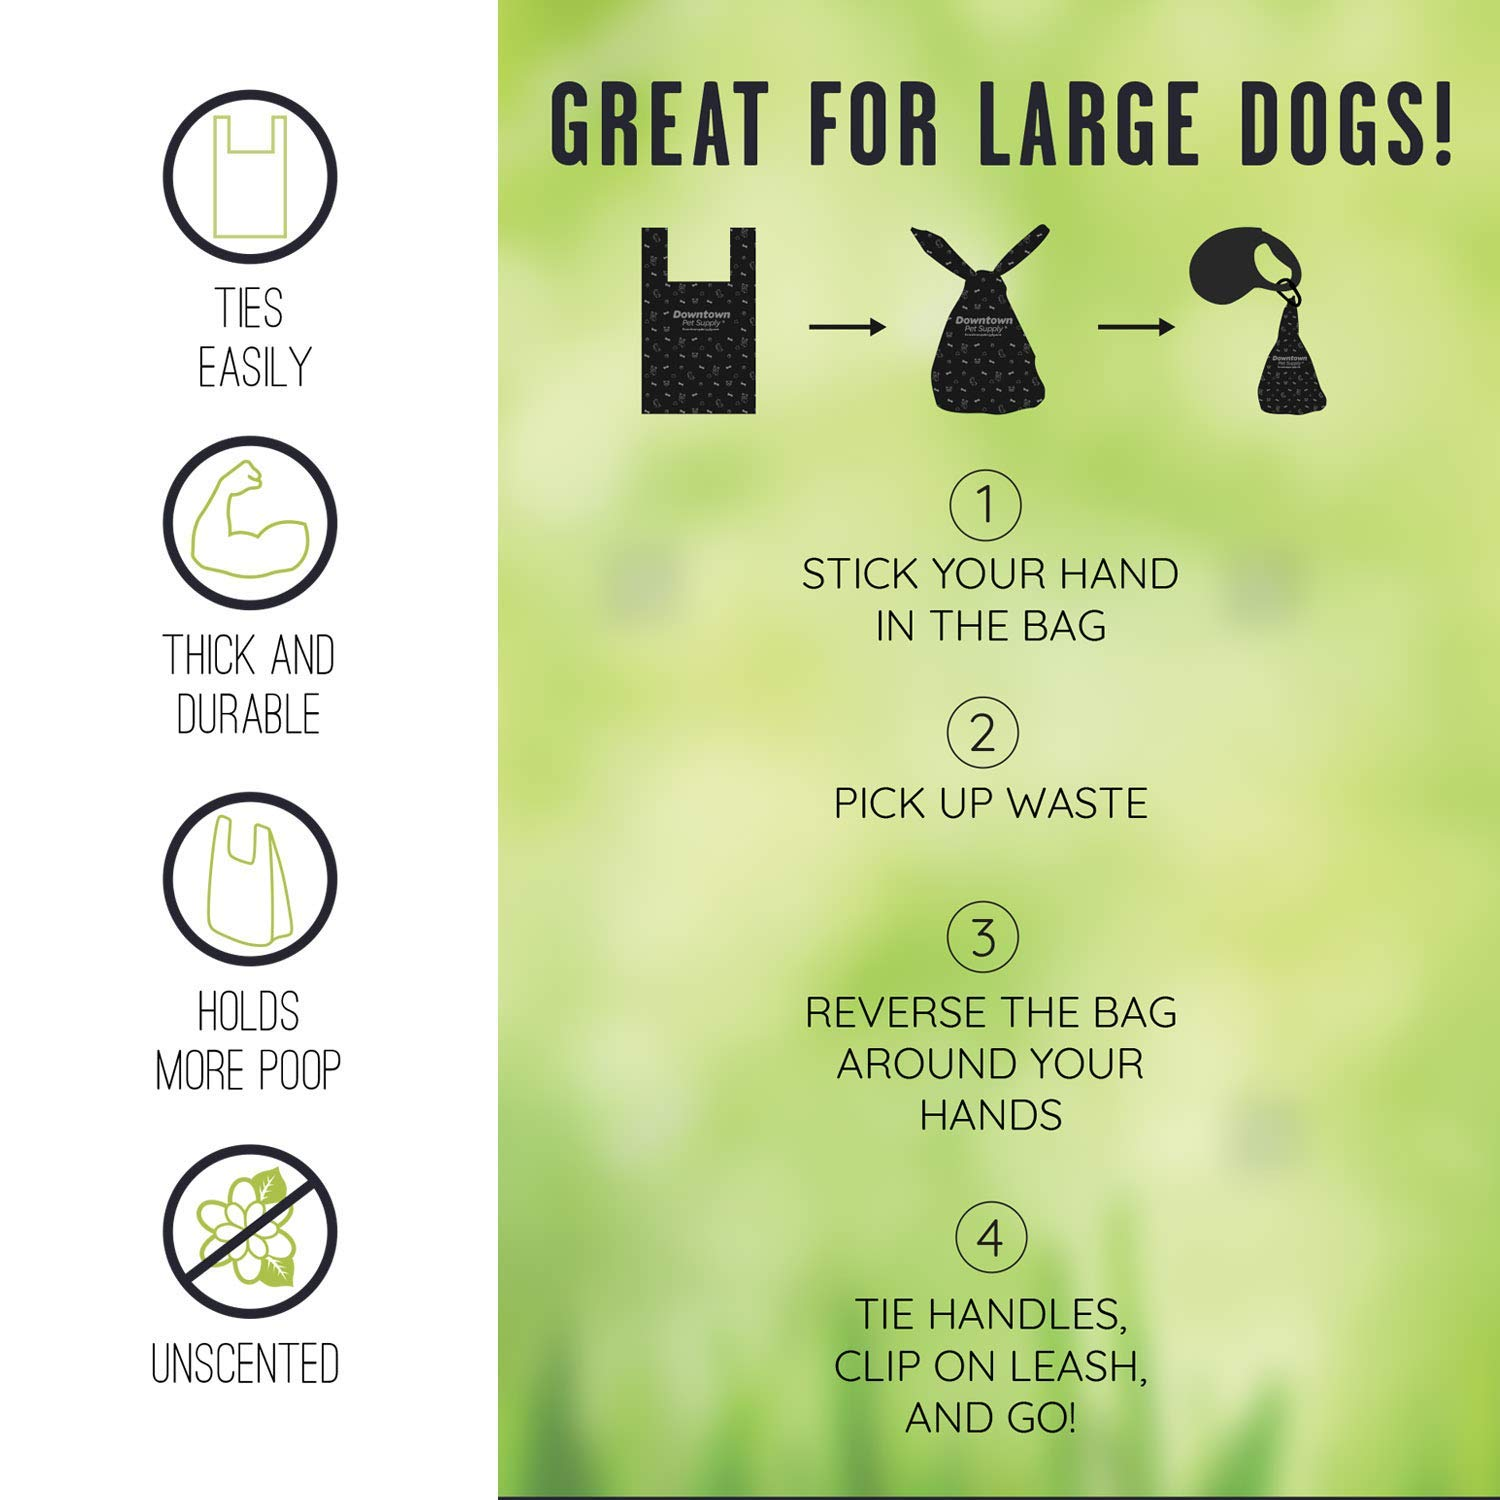 Includes Bag Holder Black and Blue Color Dog Cat Tie Handle Pet Waste Bags 6.5 x 14.5 Doggie Poop Bags Dogs